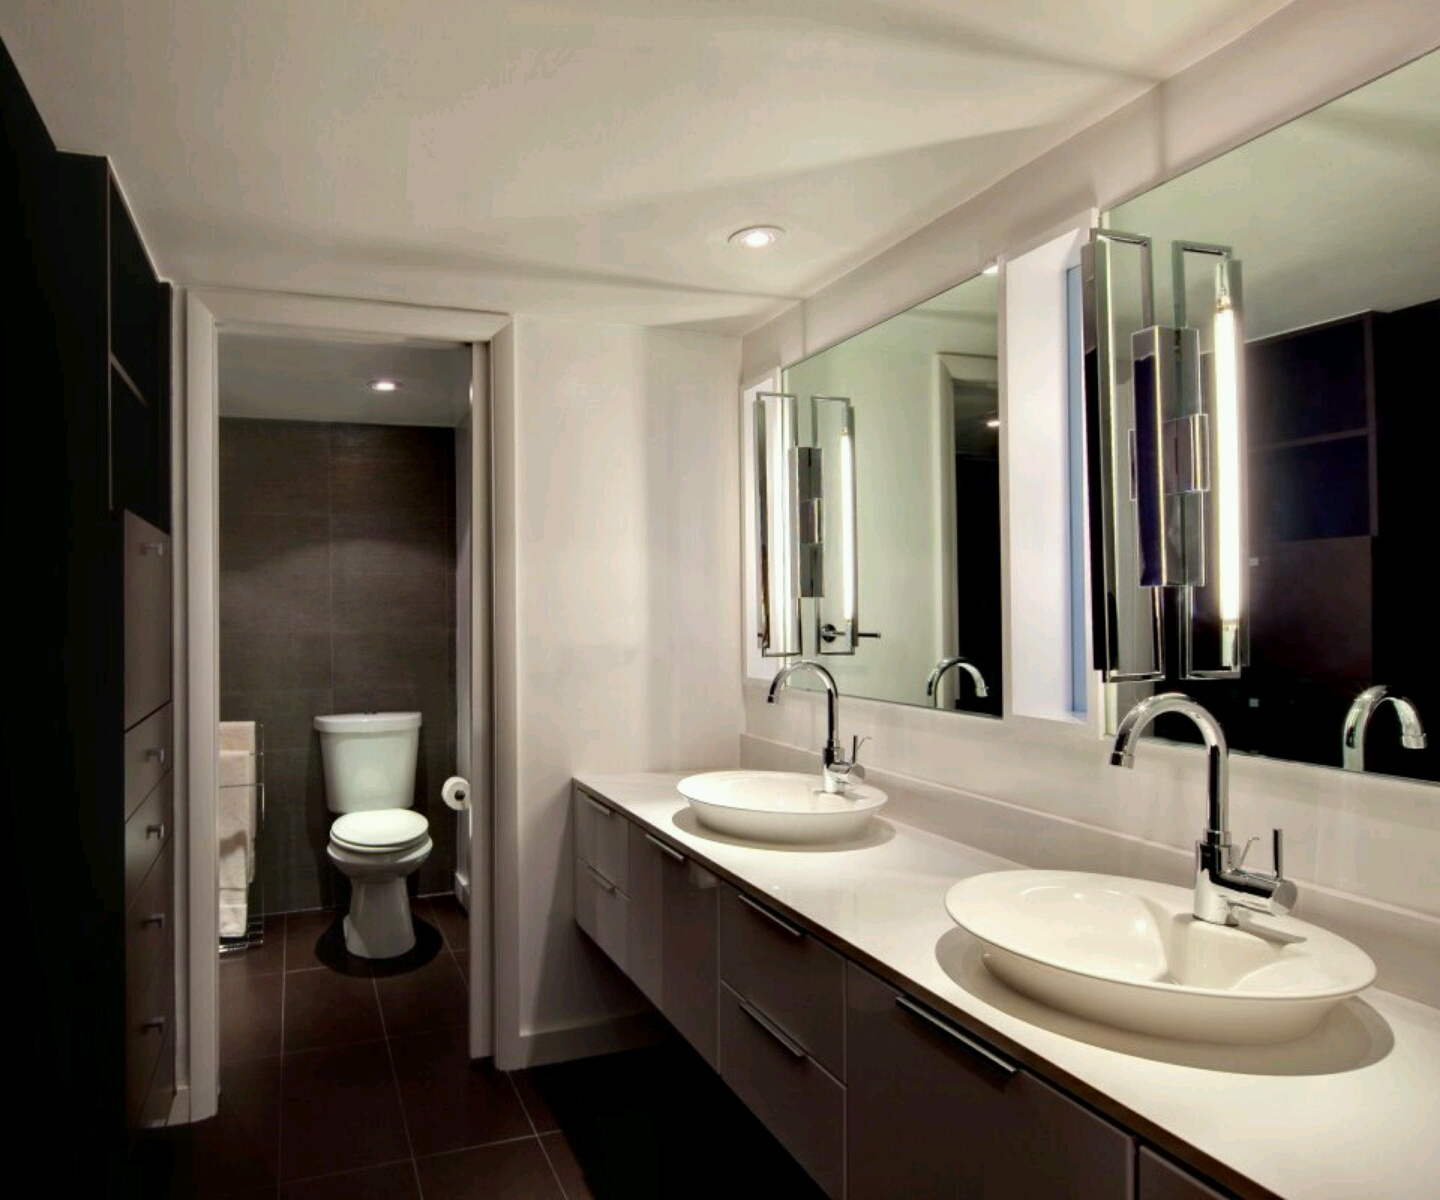 Http Blogsmodernfurniture Blogspot Com 2013 02 Modern Luxury Washrooms Designs Html